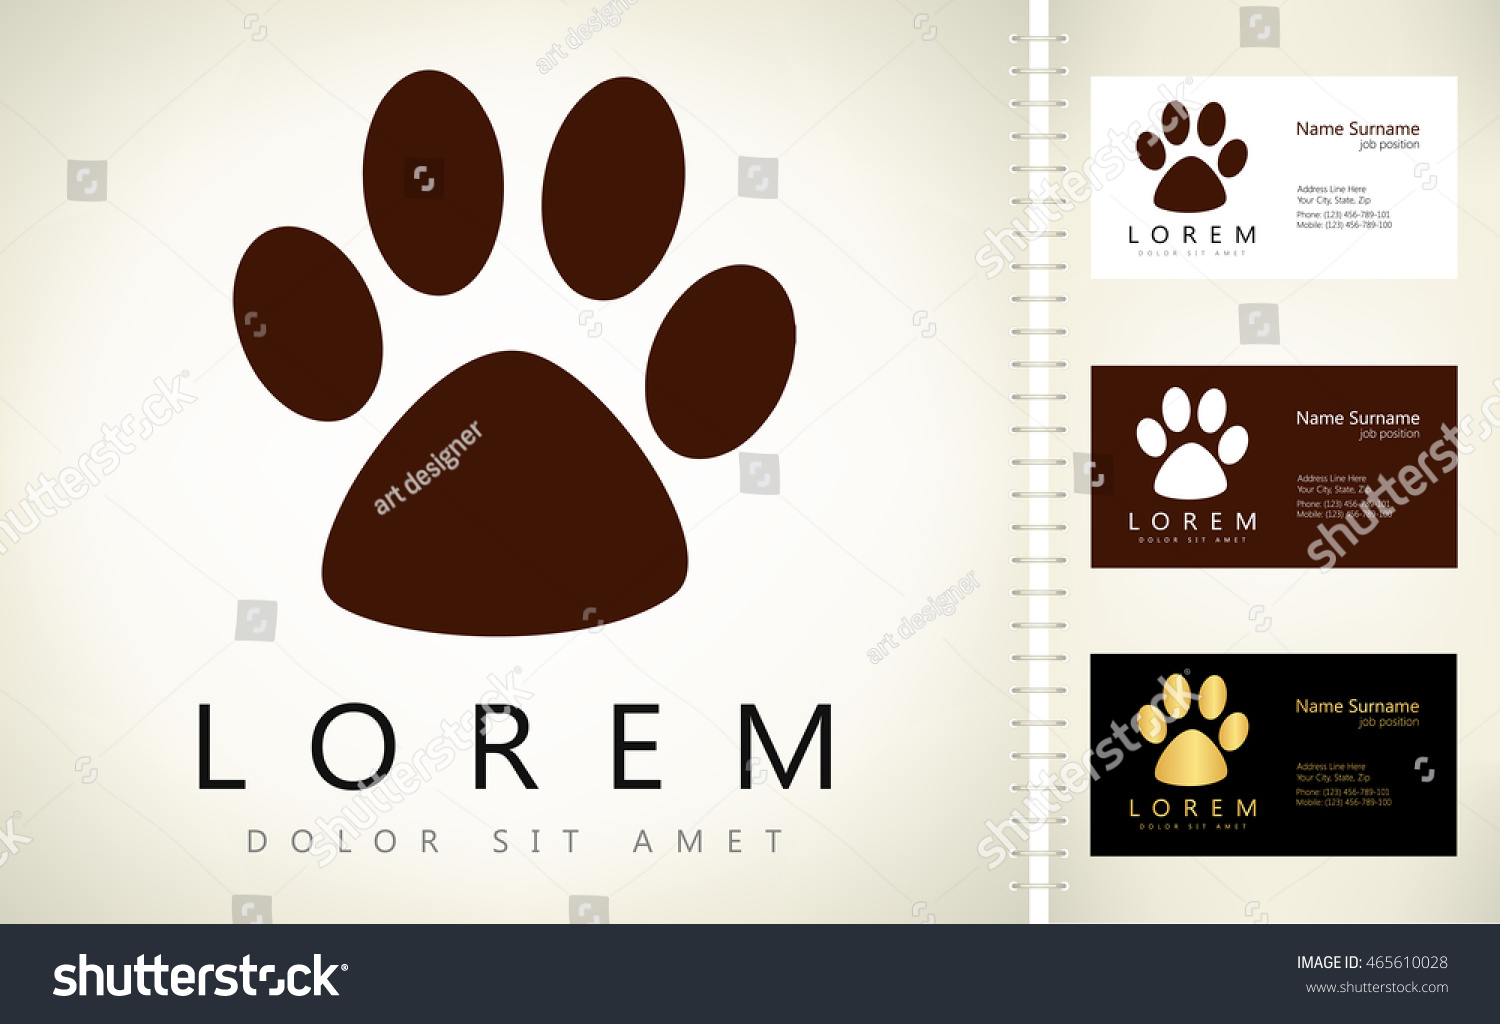 Paw Print Business Cards Gallery - Free Business Cards